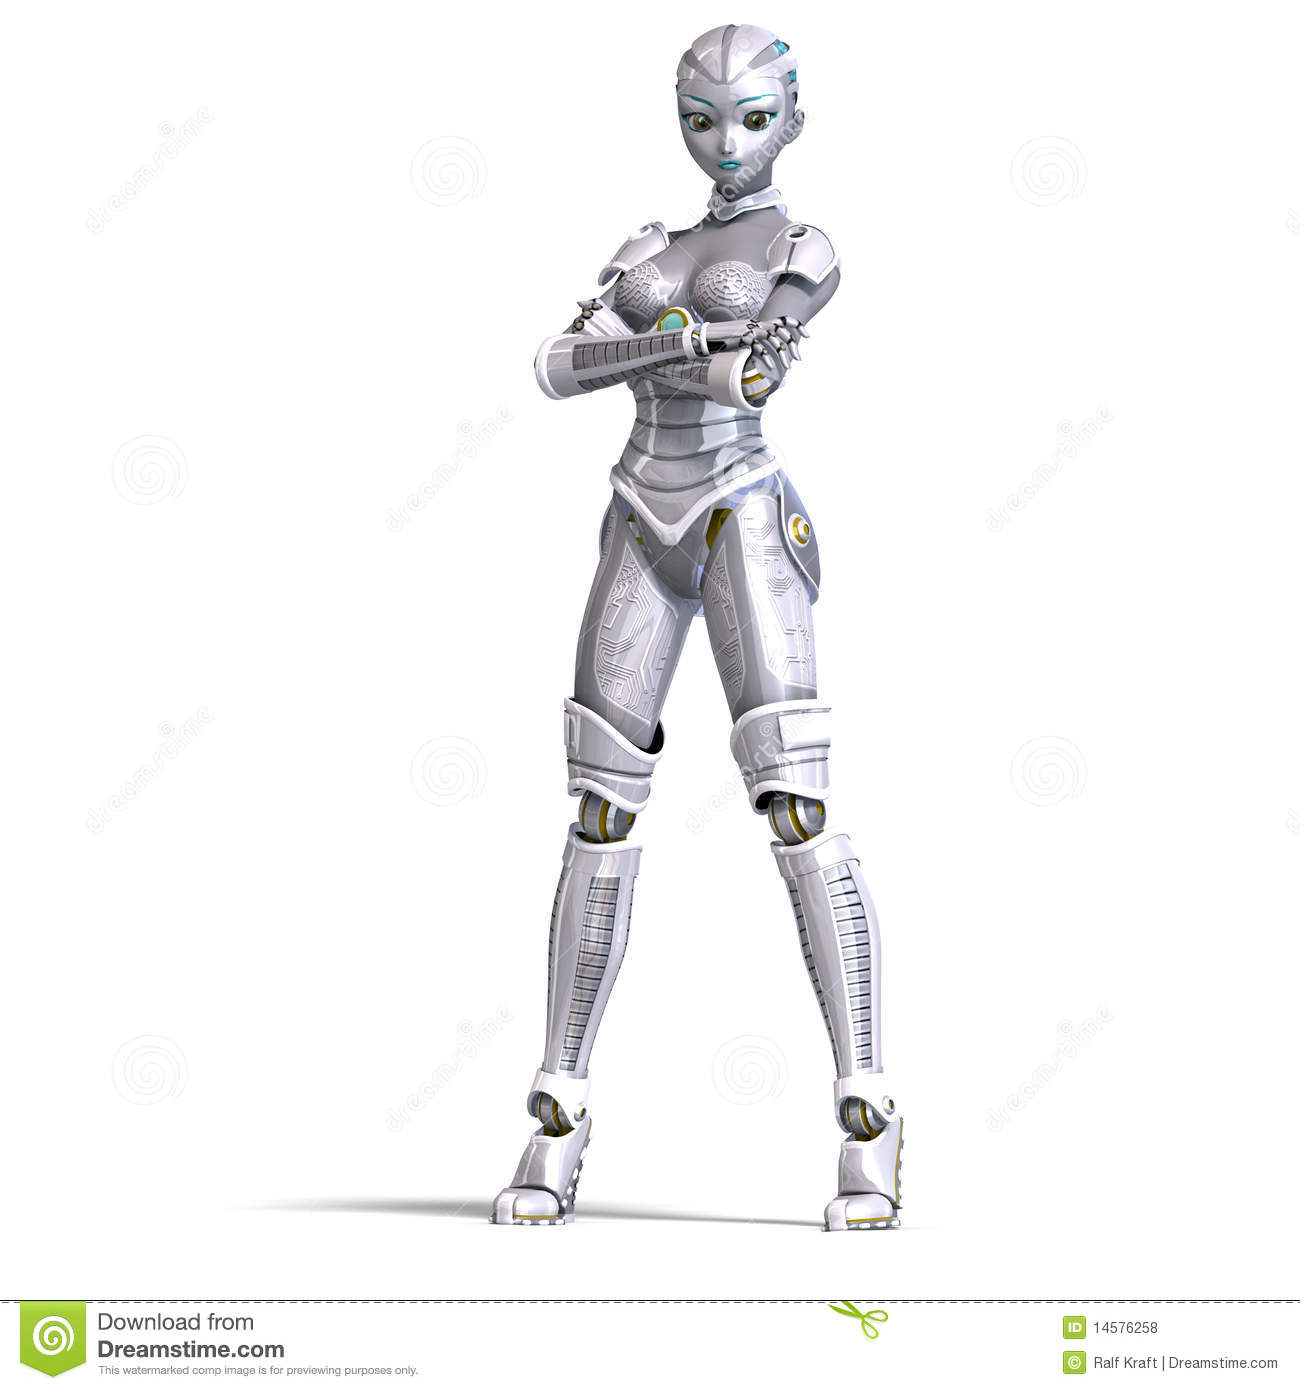 Female Metallic Robot 3d Rendering With Stock